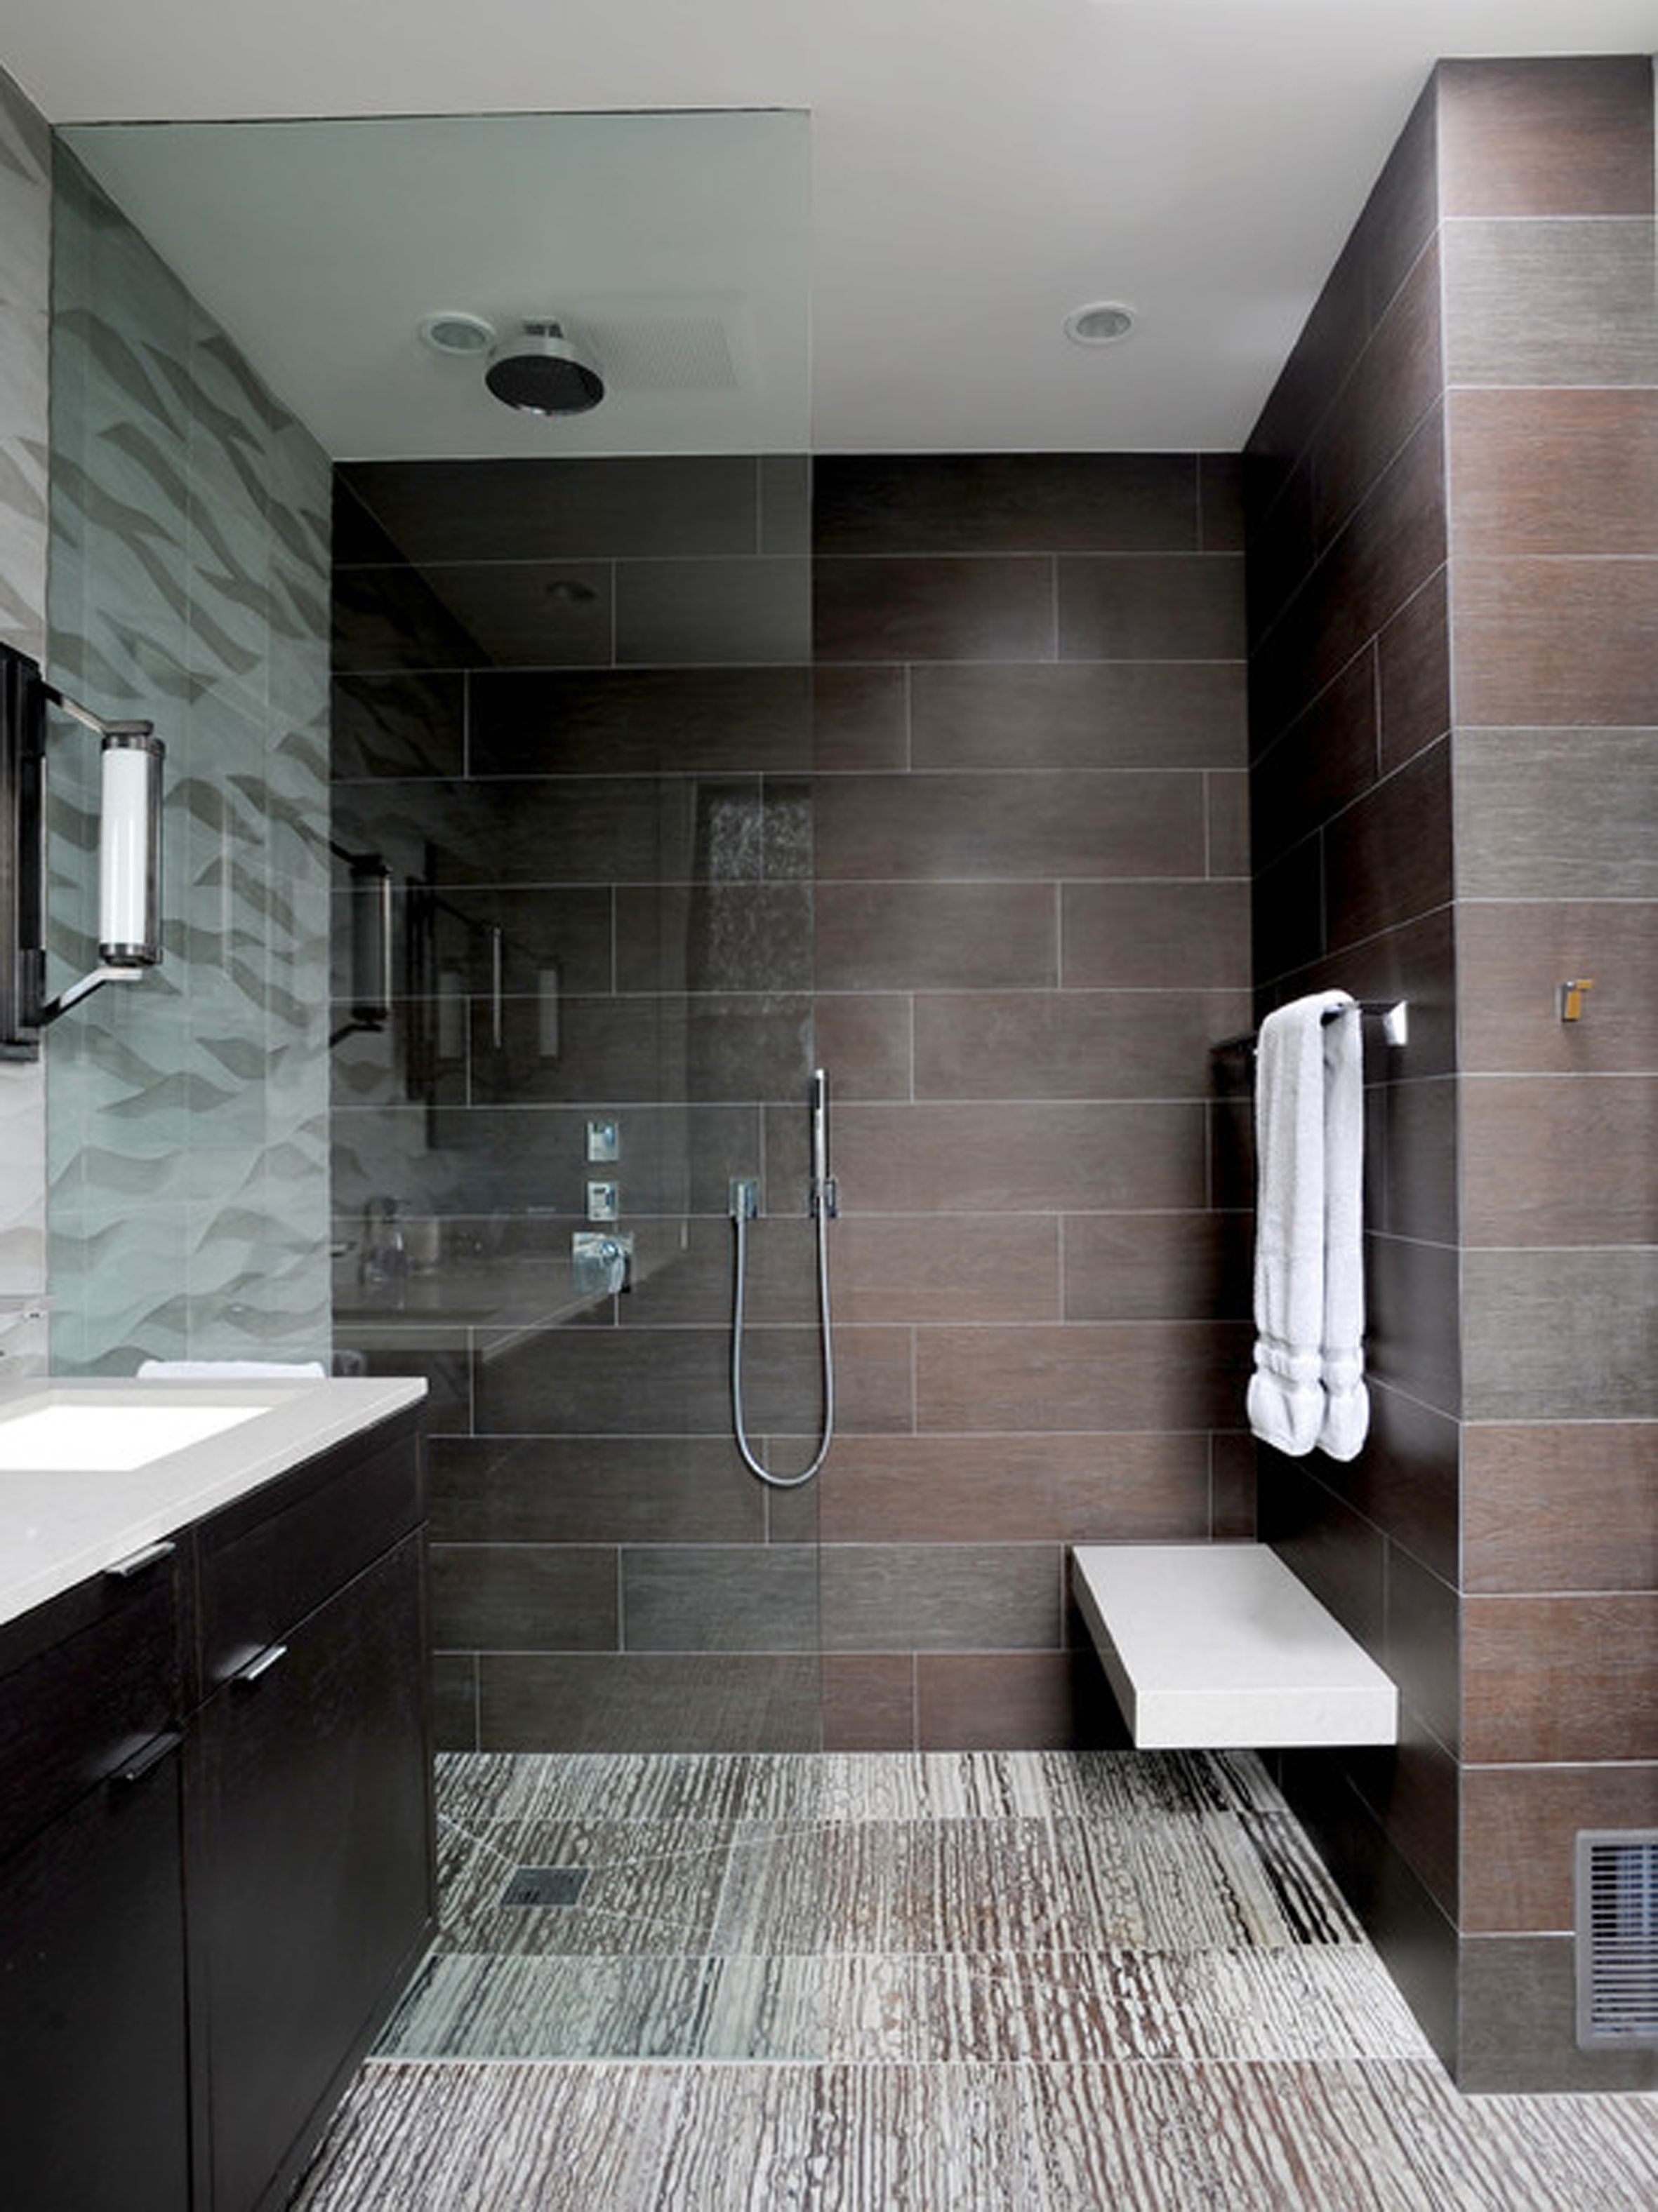 Modern bathroom shower designs - 6x5 Width Of Shower Allows For Door Less Shower Plus All